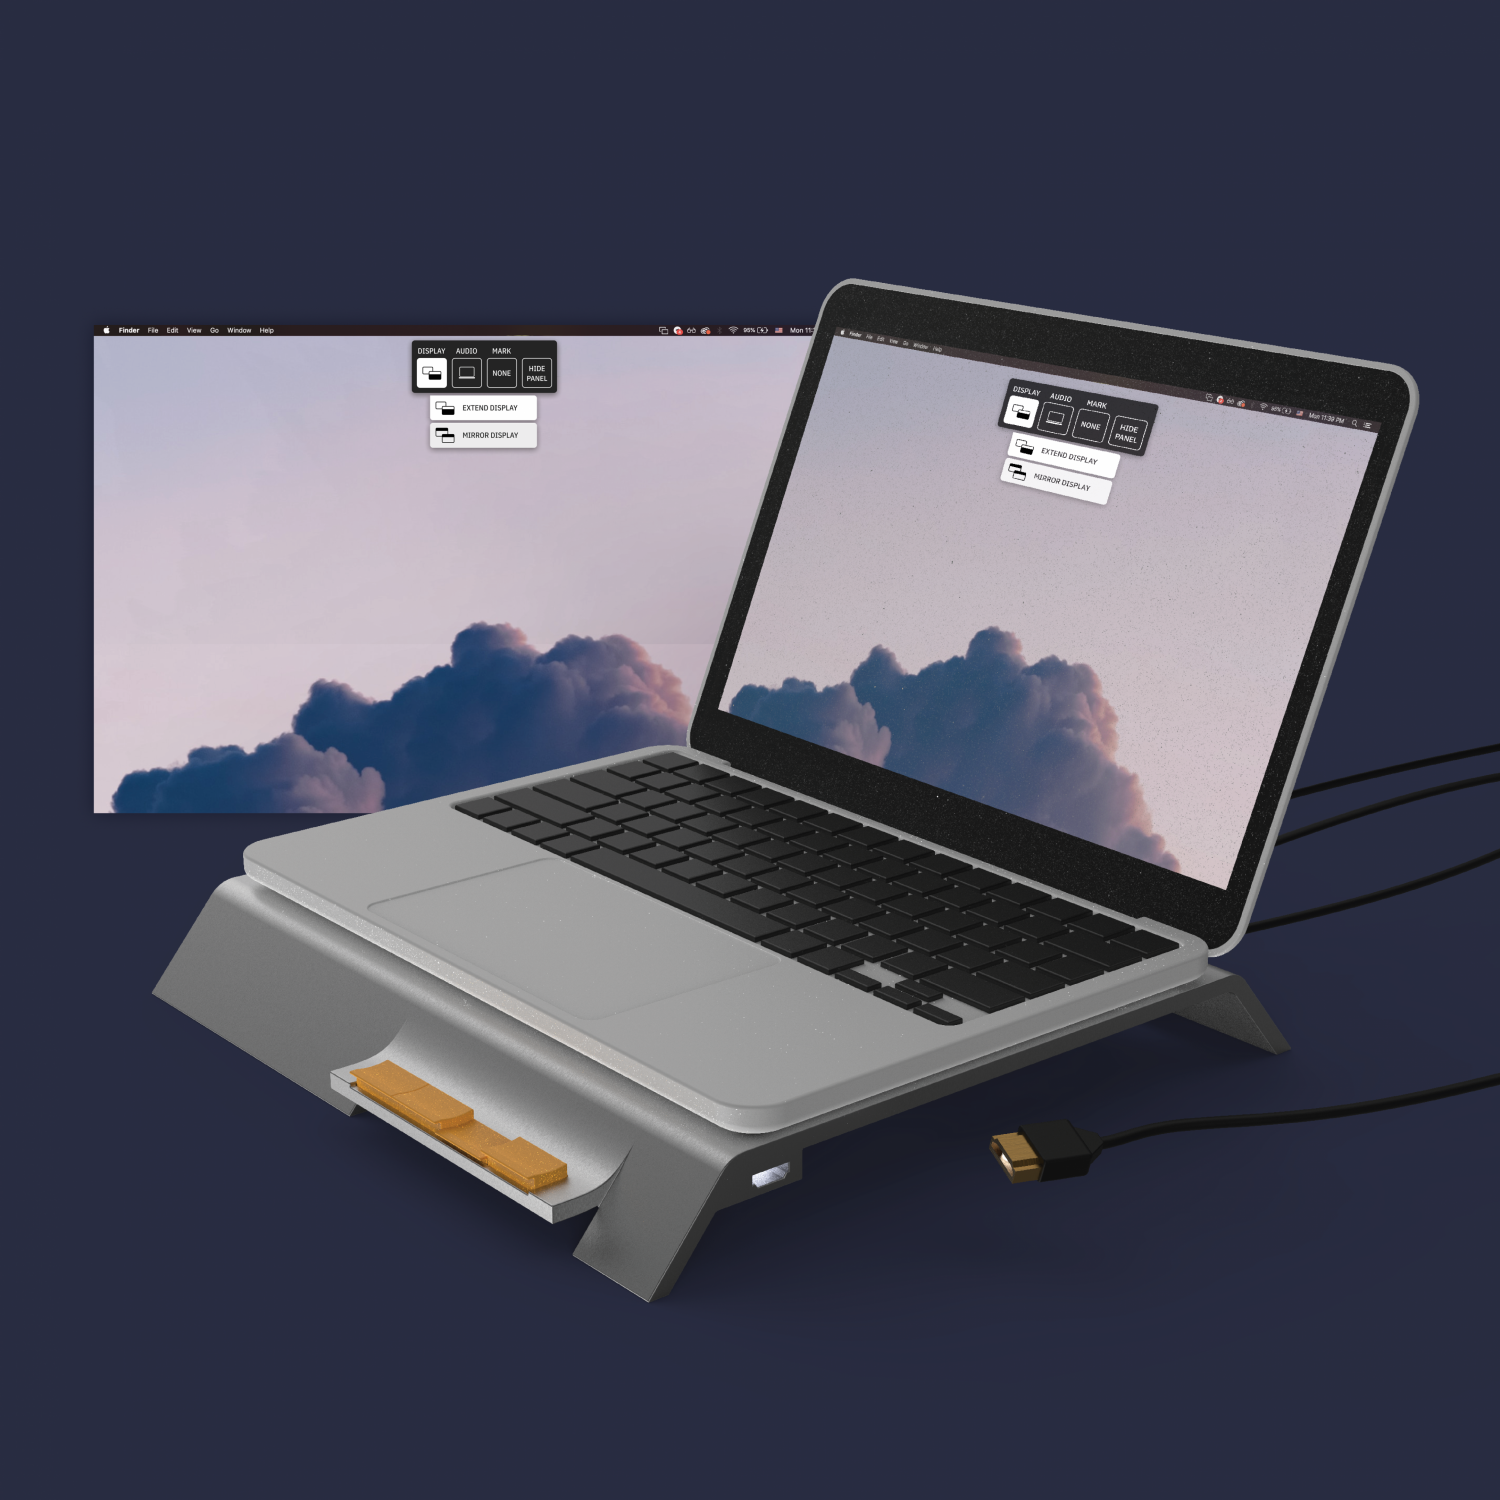 Illustration of a laptop computer sits on a raised stand with spaces for cords and images of two screens; one on the laptop itself and one possibly projected on a wall.